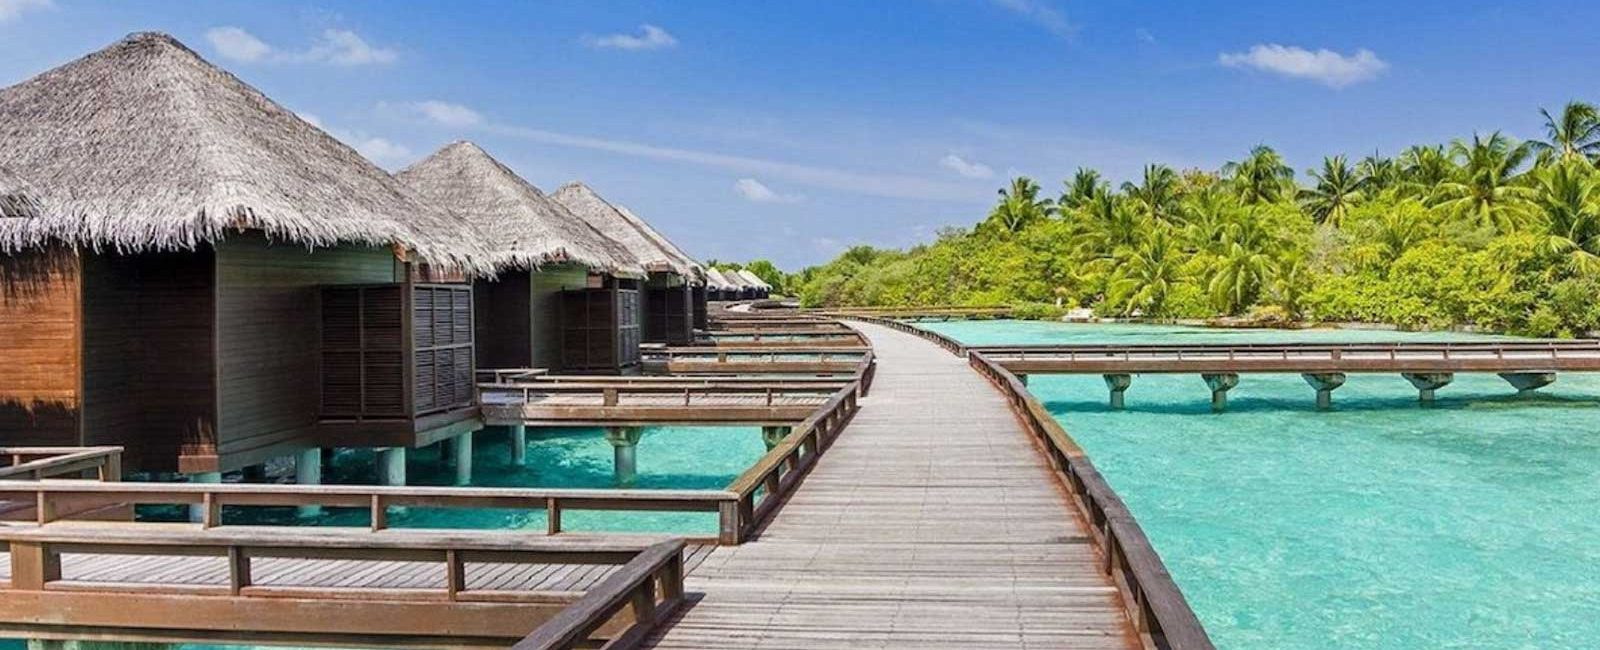 Traveling to the Maldives